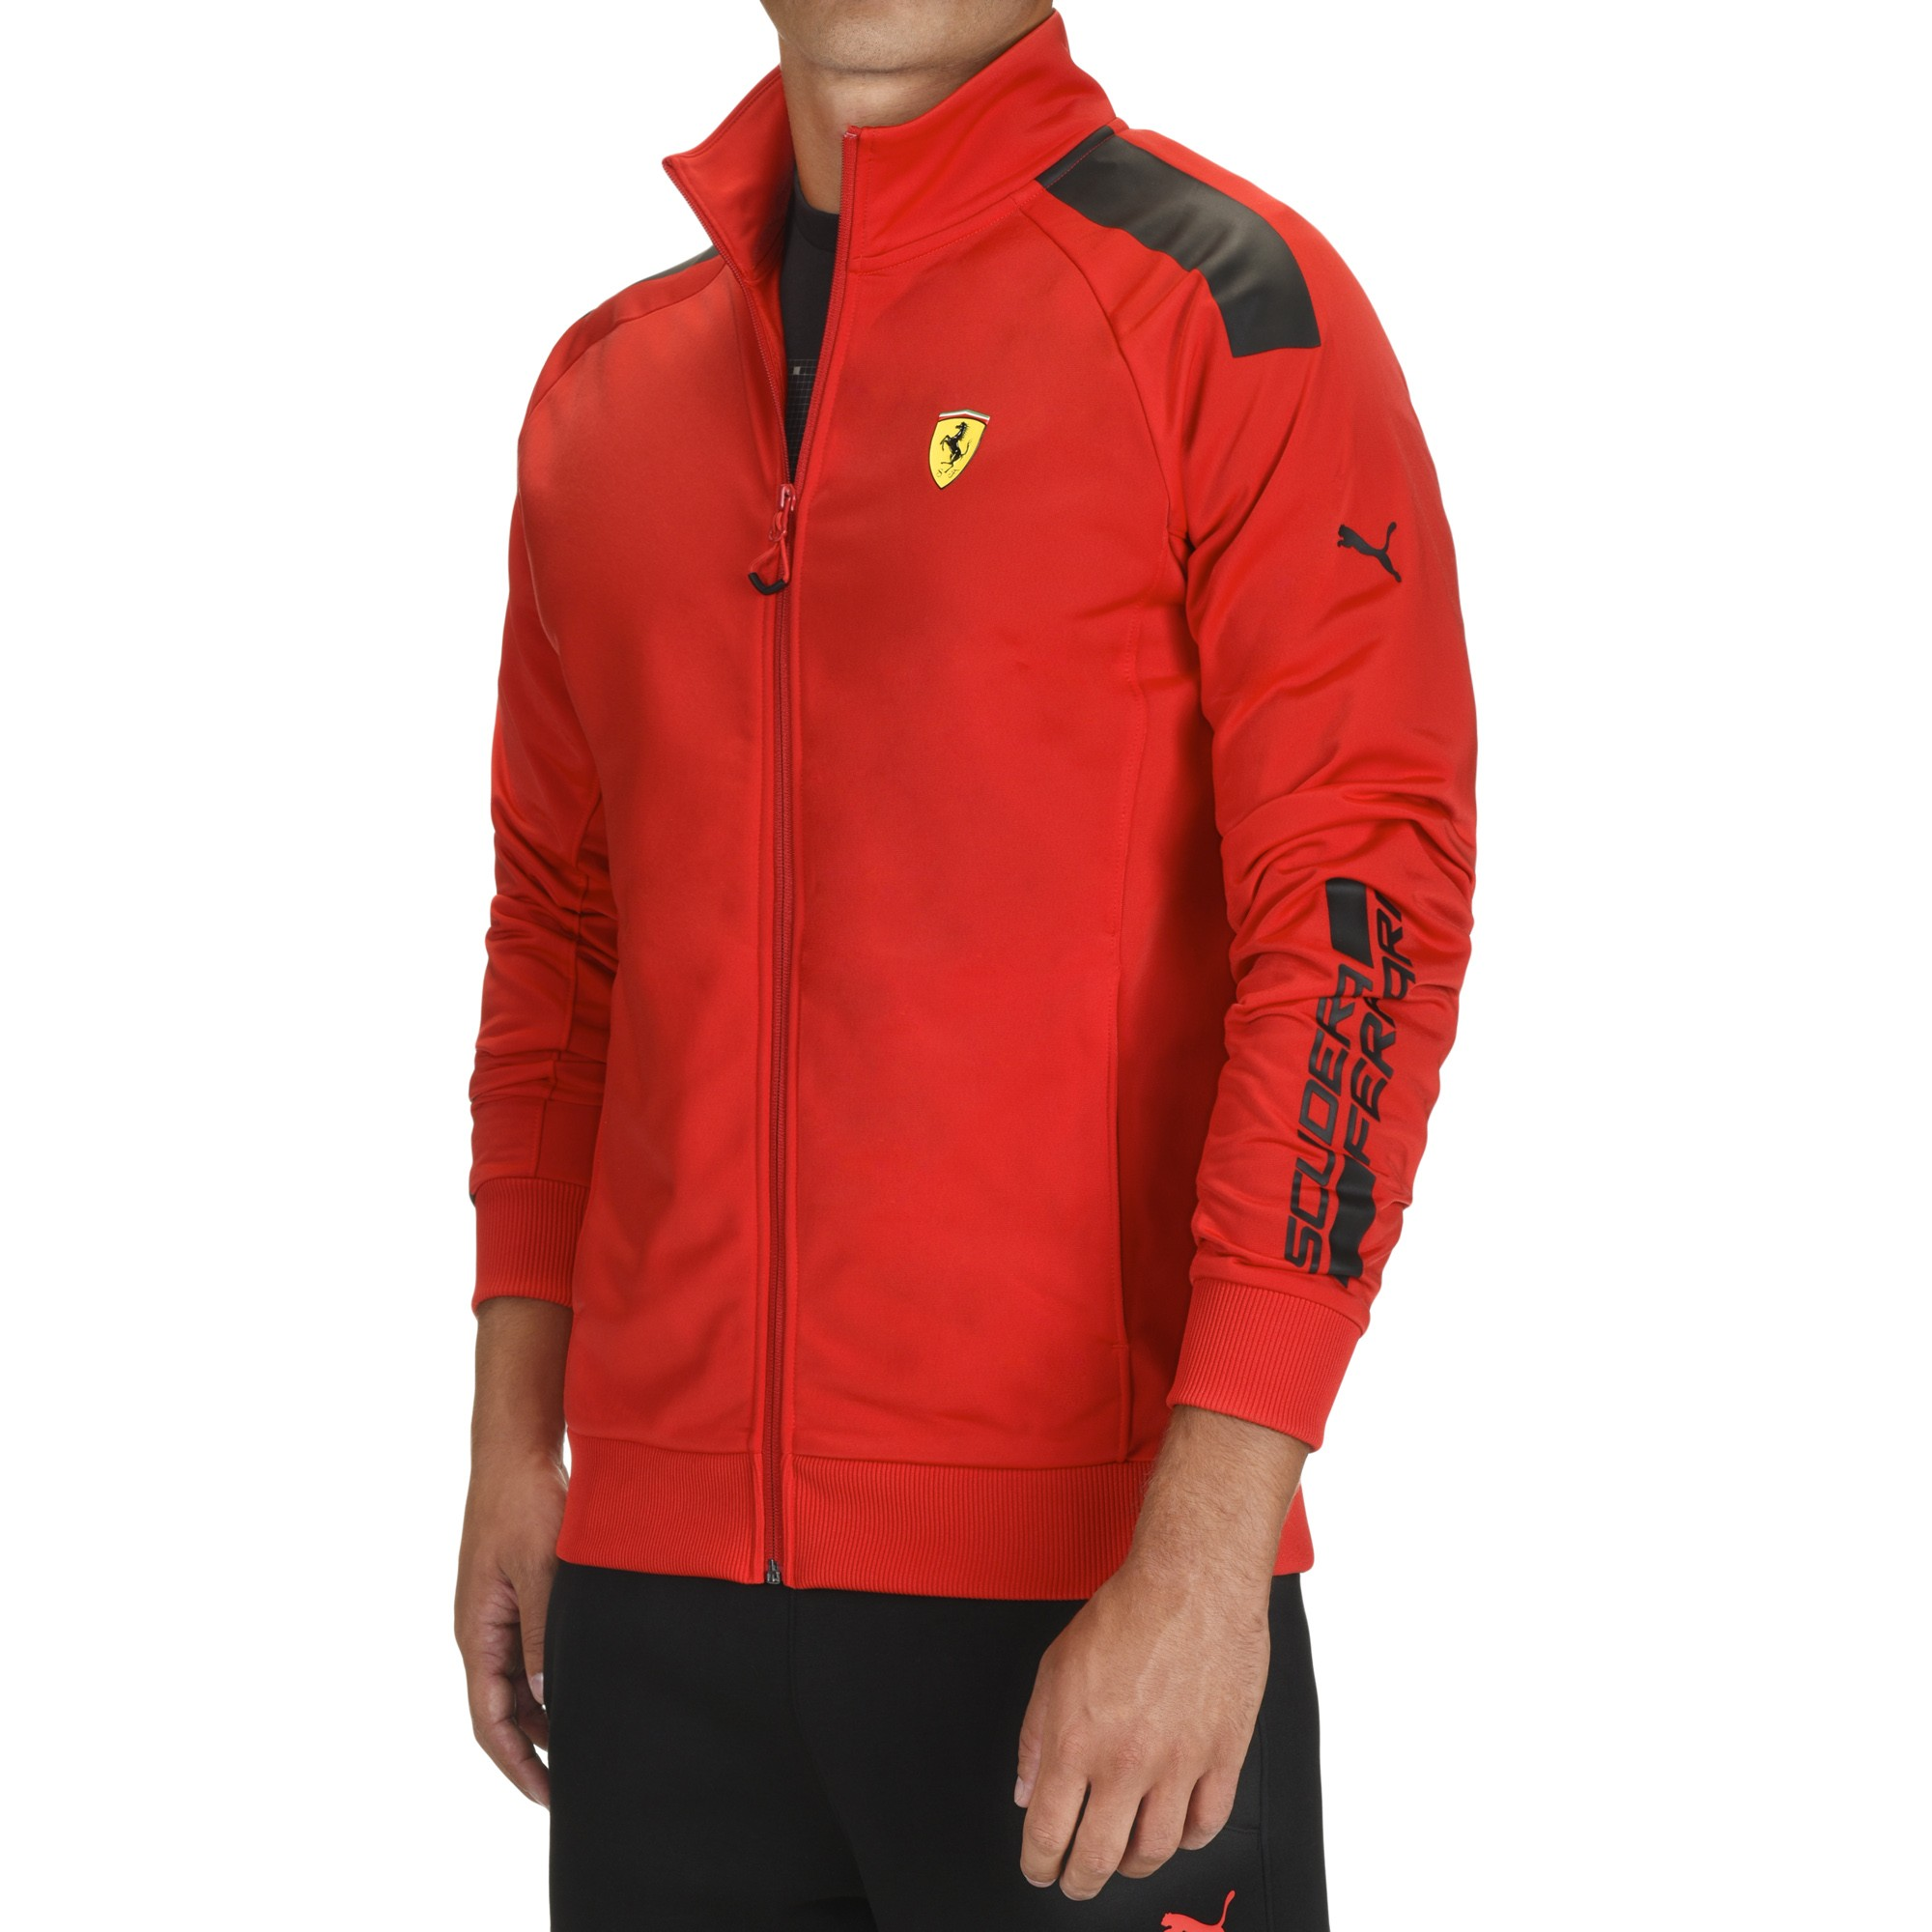 corsa ferrari womens shoes lady puma rosso jacket sp red sweatshirts foot locker